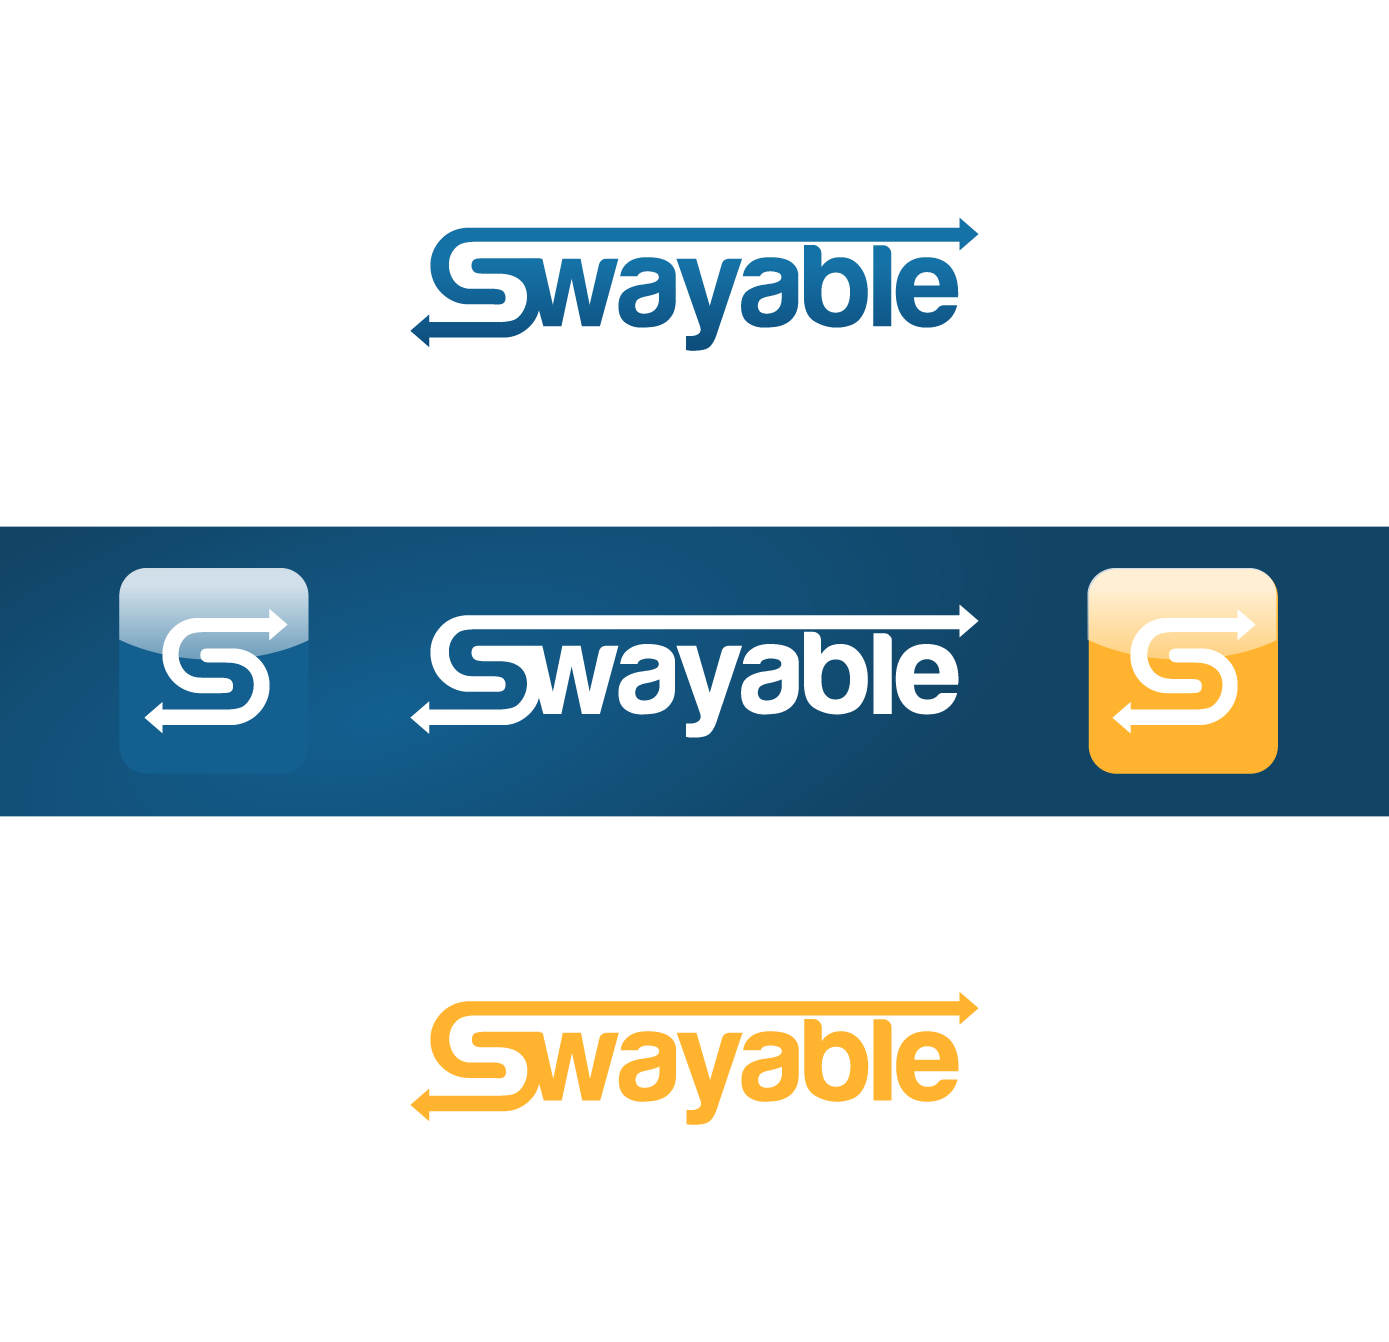 New logo wanted for Swayable